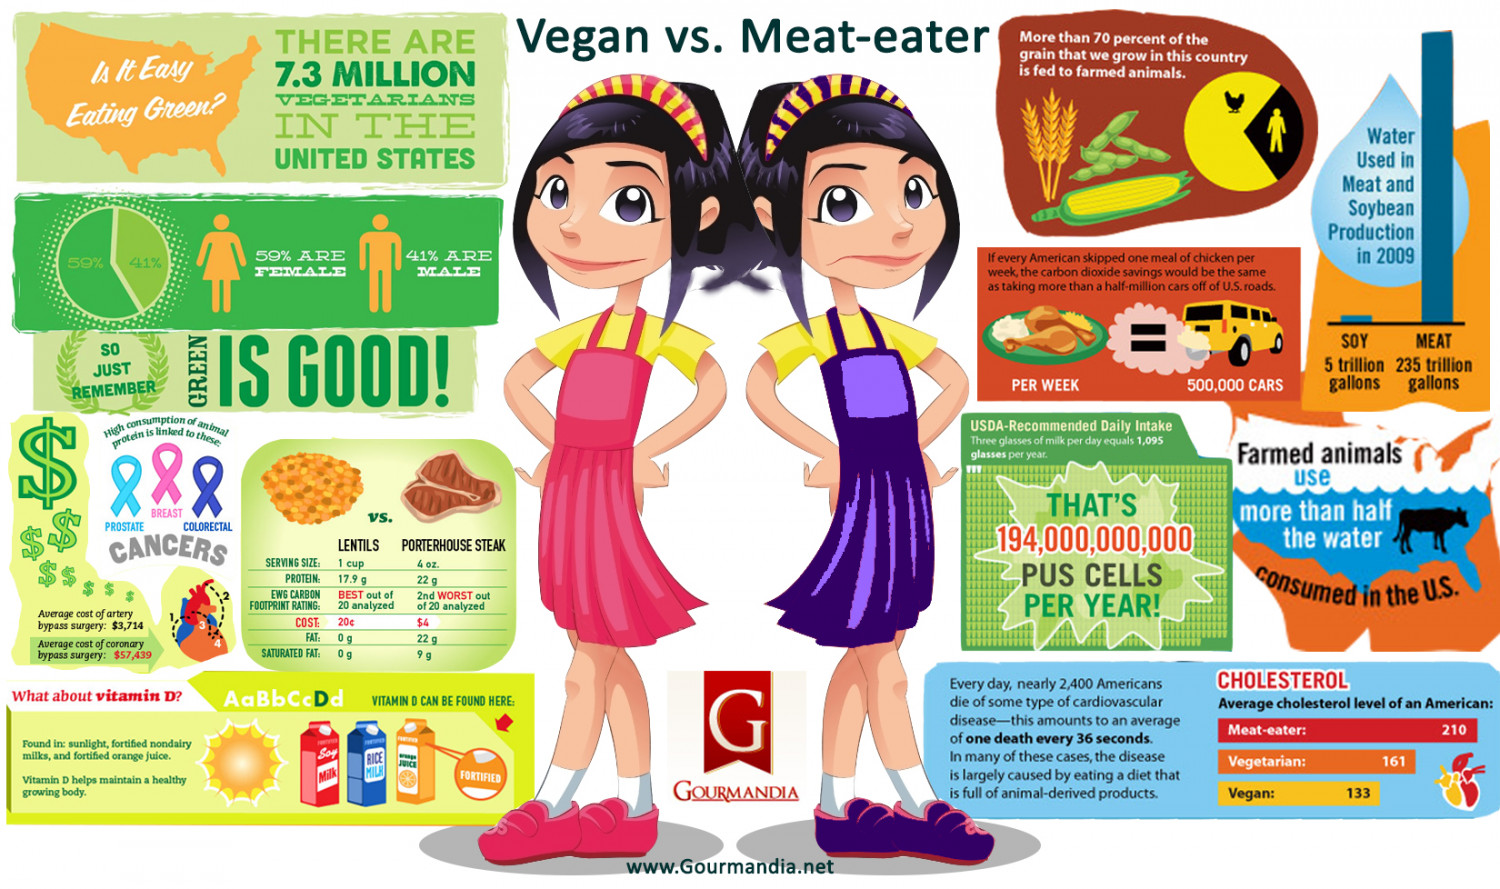 essay about vegetarian vs meat eaters There are four main diets: meat-eater, fish-eater, vegetarian and vegan a meat-eater is someone who eats anything with no restrictions a fish-eater is a person that does not eat meat but do eat fish and animal bi-products, such as dairy and eggs.